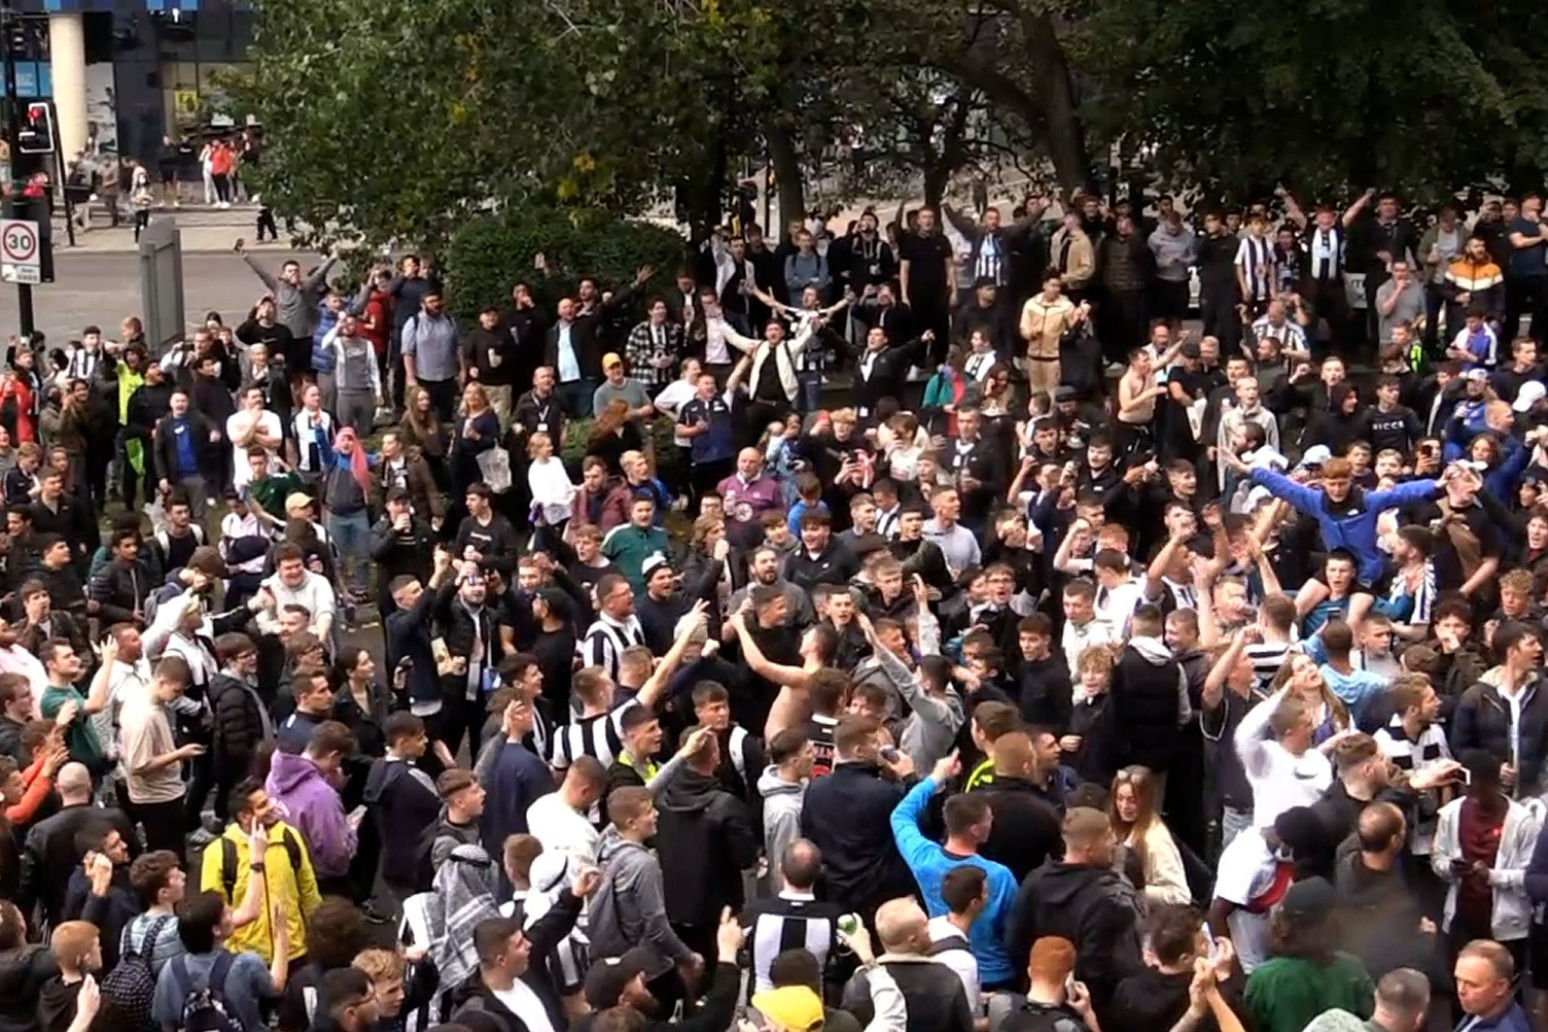 Newcastle takeover brings celebration and controversy in equal measure